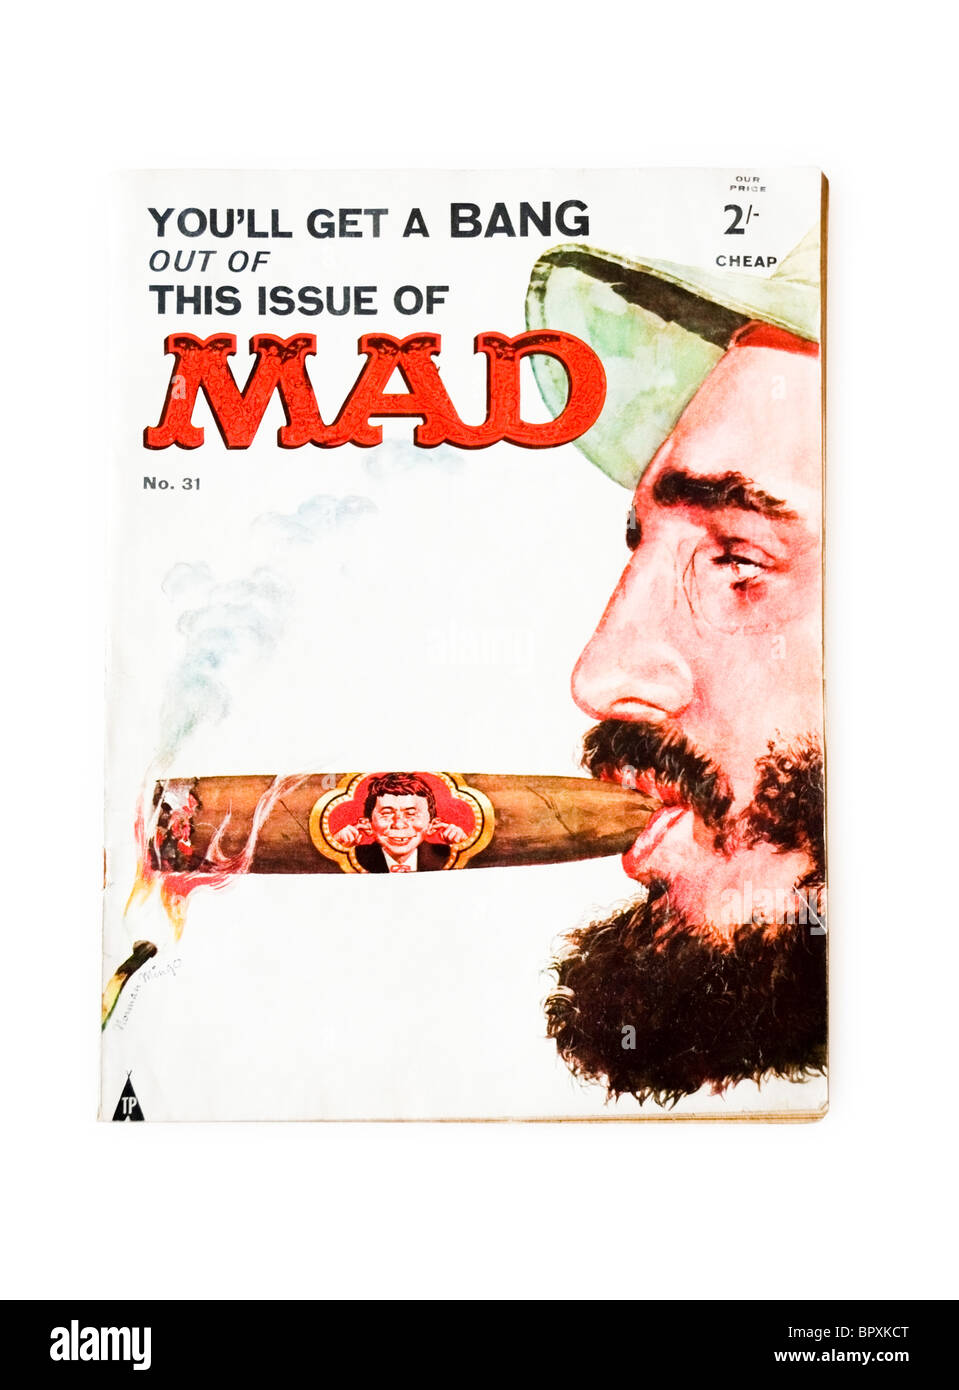 Front cover design of MAD, American humour magazine, illustration by Alfred Newman - Stock Image